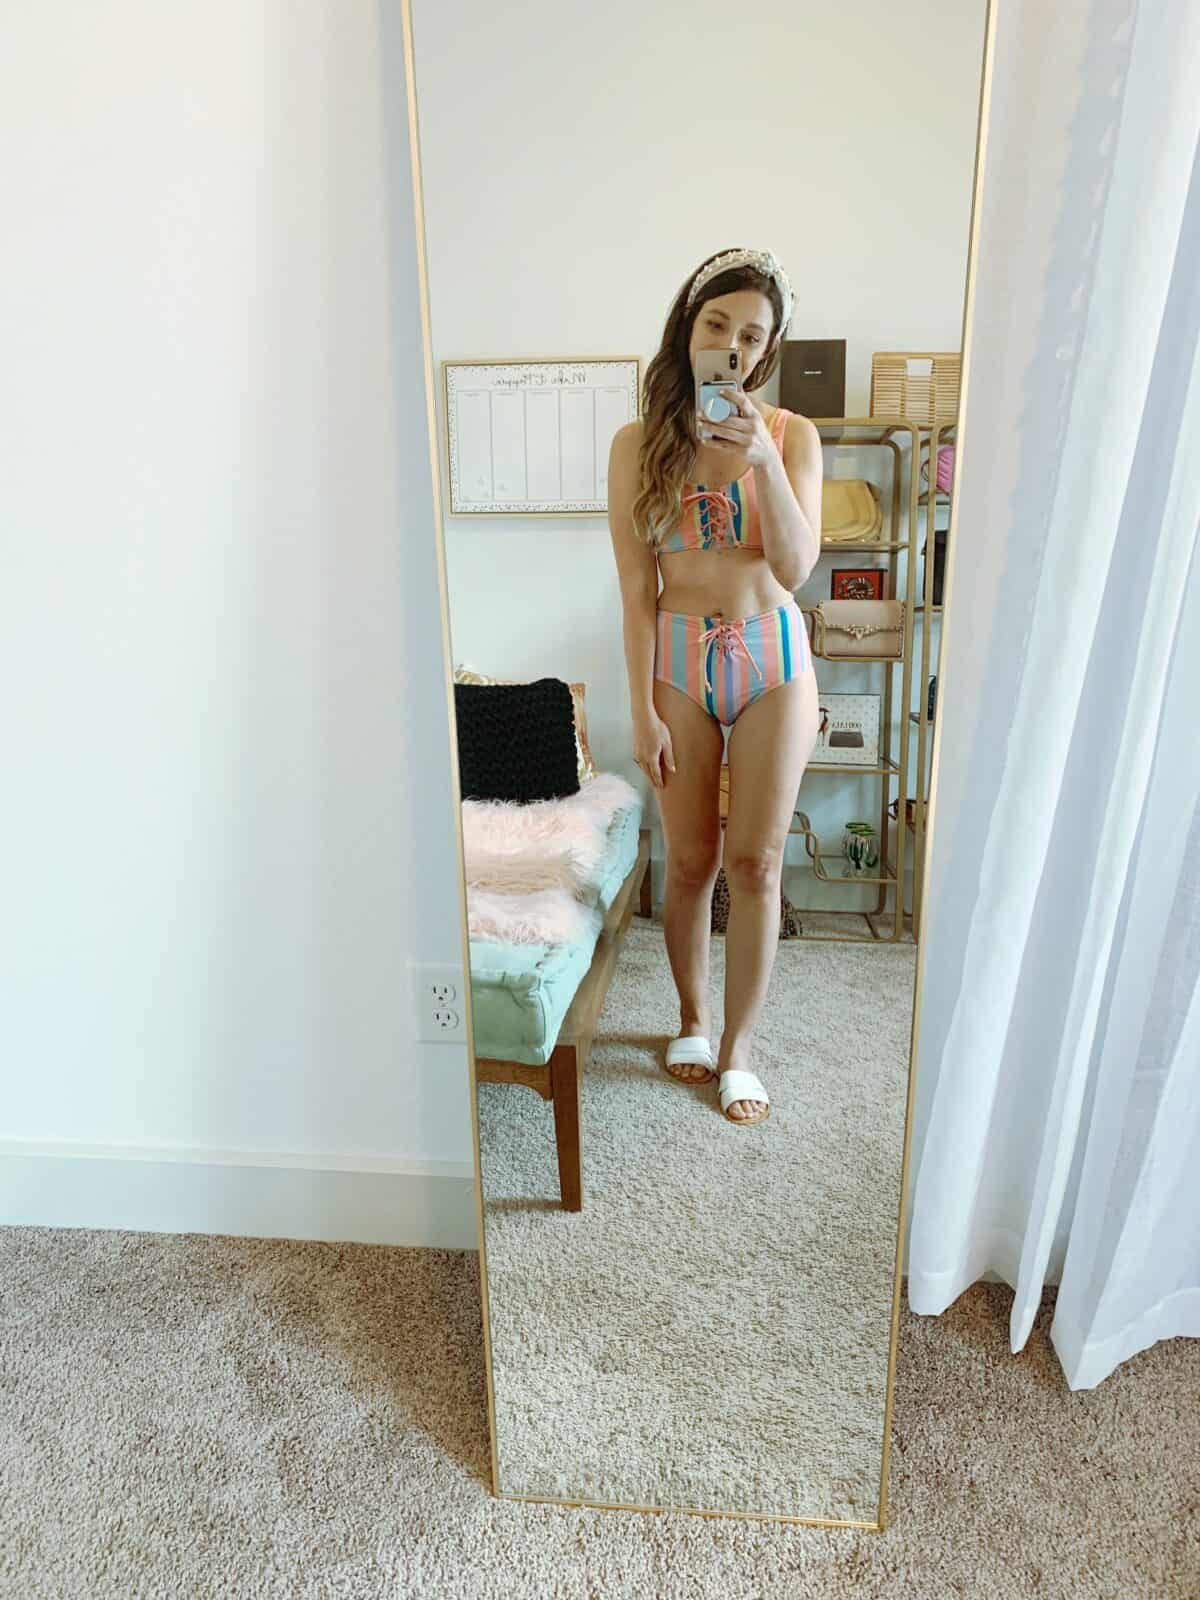 Walmart 2 piece striped swimsuit